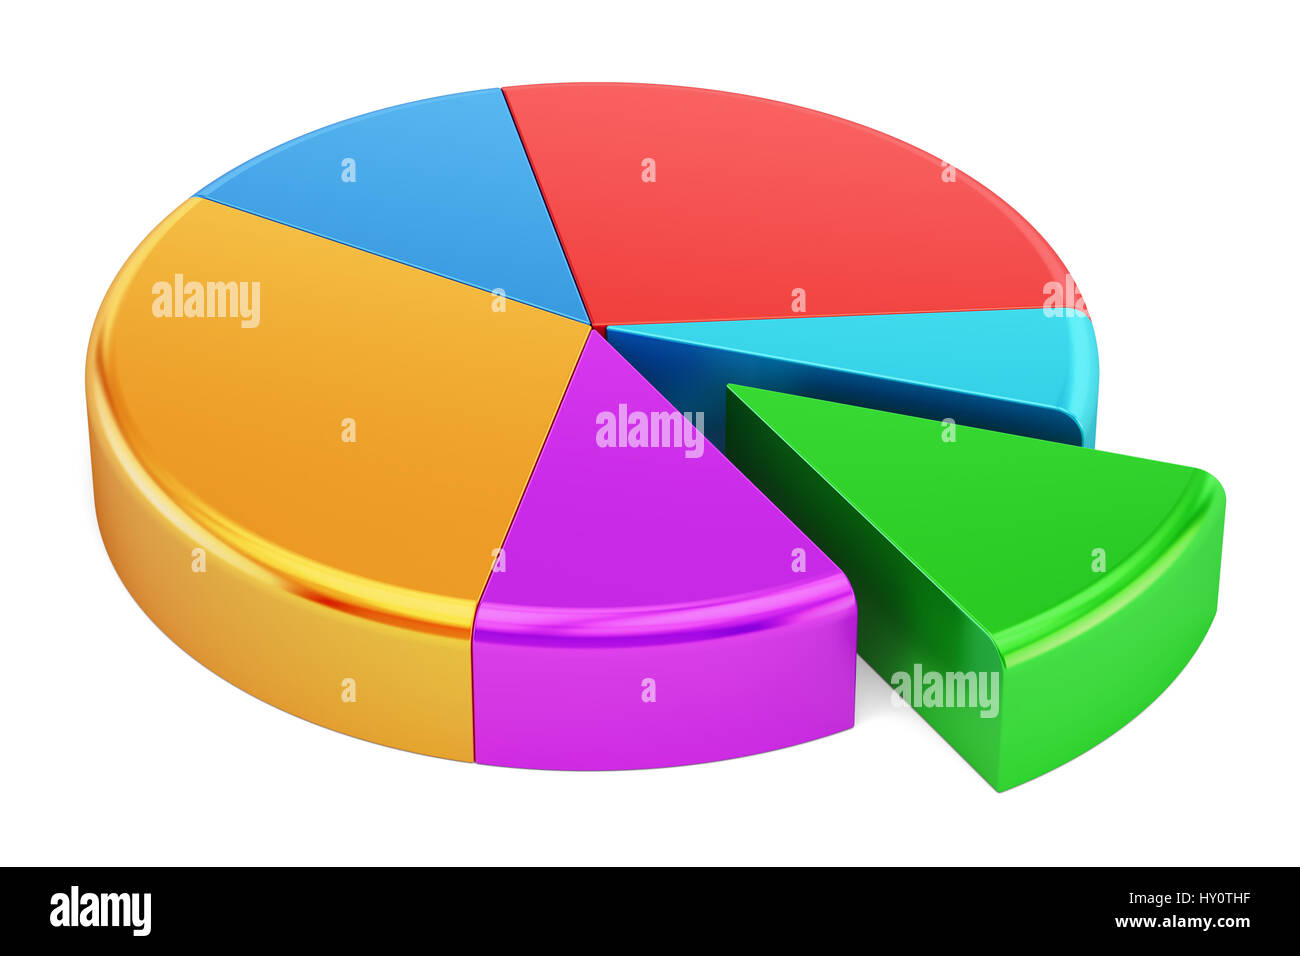 Colored pie chart 3d rendering isolated on white background stock colored pie chart 3d rendering isolated on white background nvjuhfo Gallery